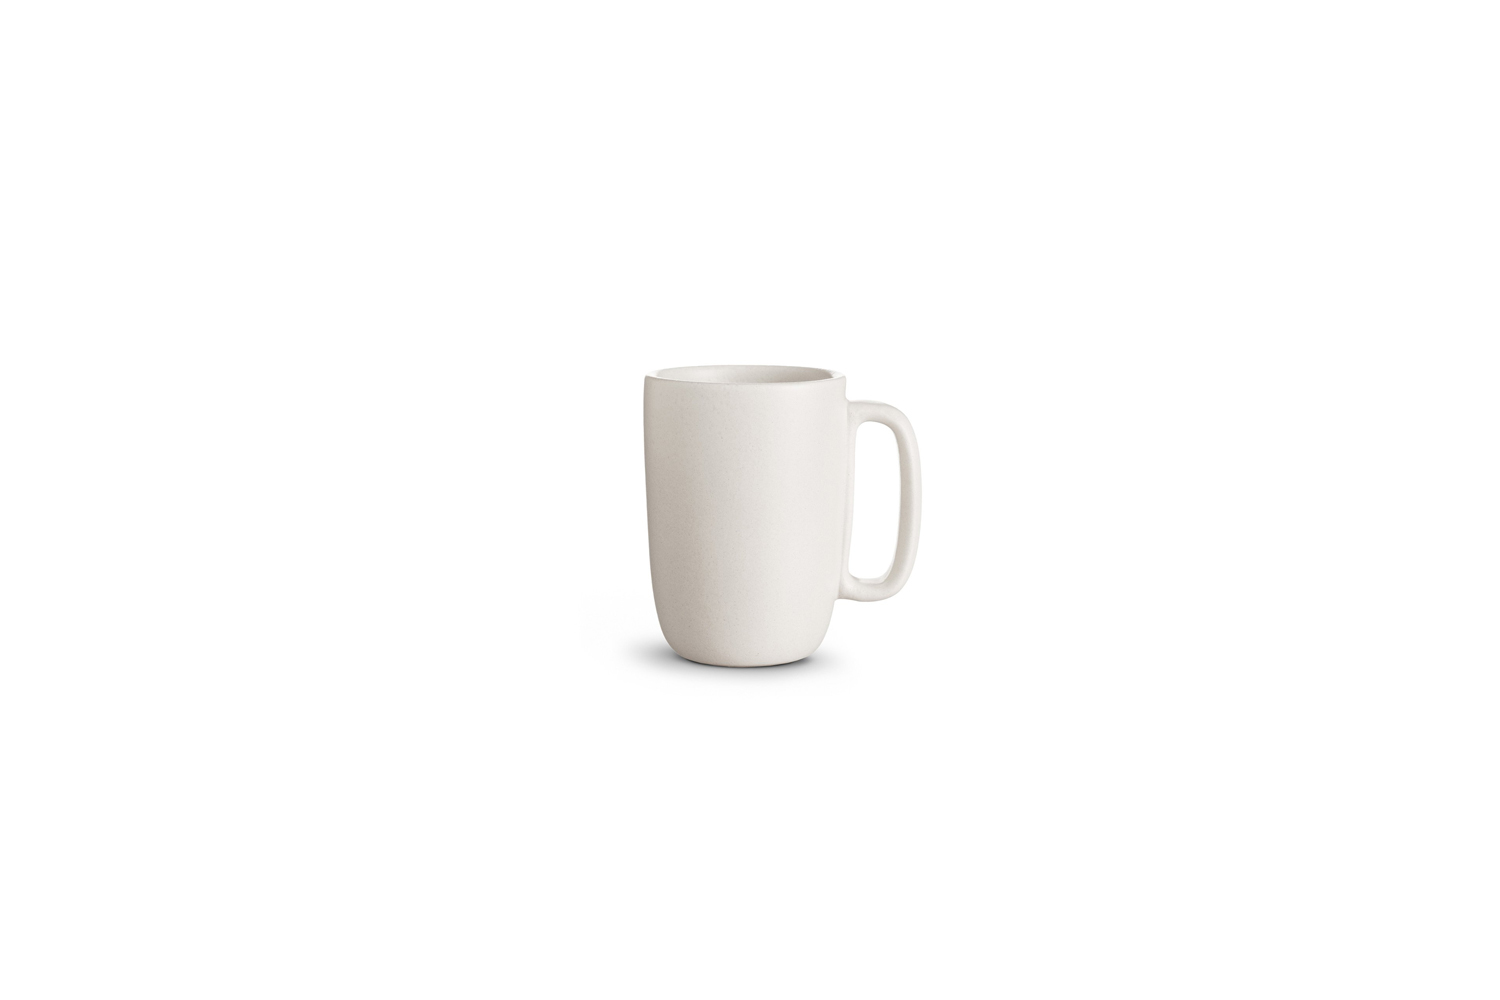 from the chez panisse line by heath ceramics, the large mug is $41. 9